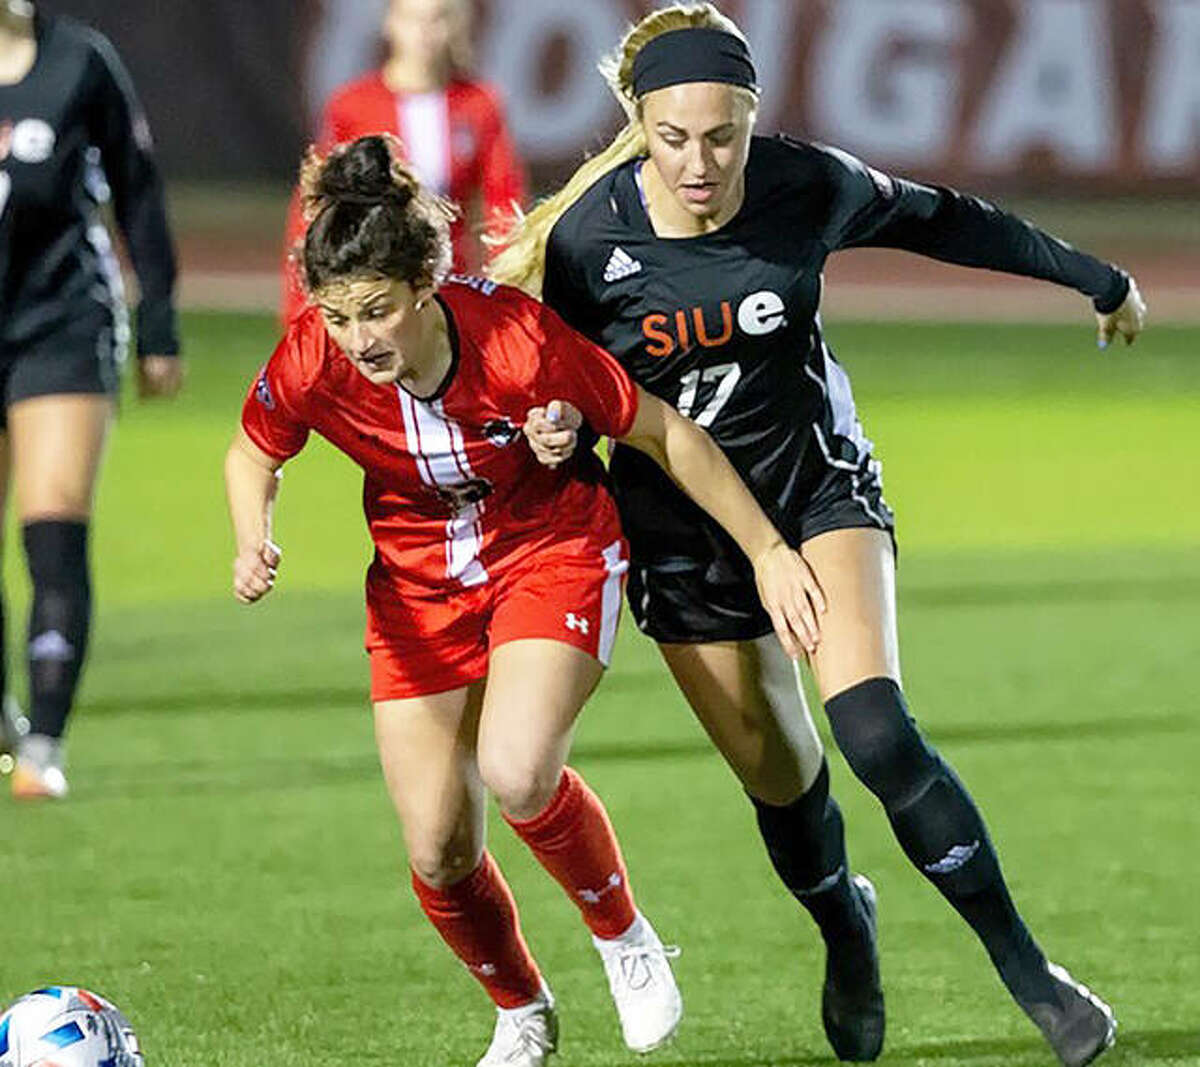 Following a five-point performance in Sunday's 4-3 overtime win at Tennessee Tech, SIUE women's soccer forward MacKenzie Litzsinger was named Ohio Valley Conference Offensive Player of the Week. She is shown in action last season.